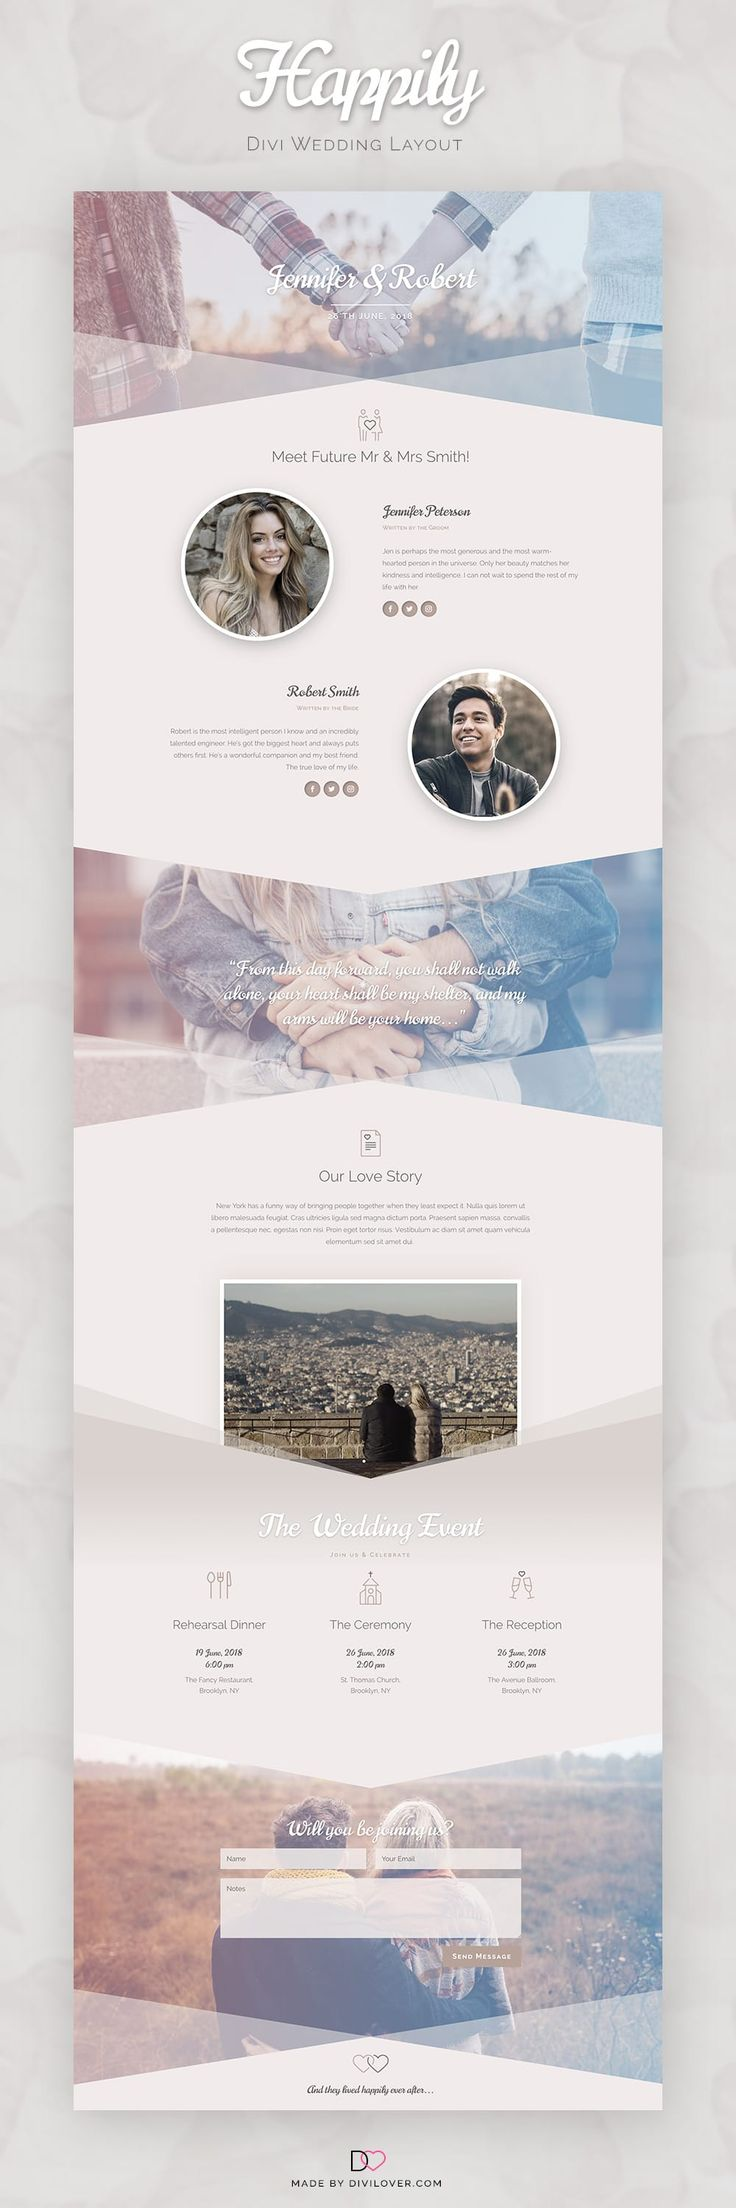 Happily is a free Divi layout made for all the lovely Brides and Grooms out there, who are looking for a simple way to connect with their wedding guests. Happily is a responsive Divi layout with a clean, elegant design and a beautiful color combination and custom wedding icons. It can be used as a …